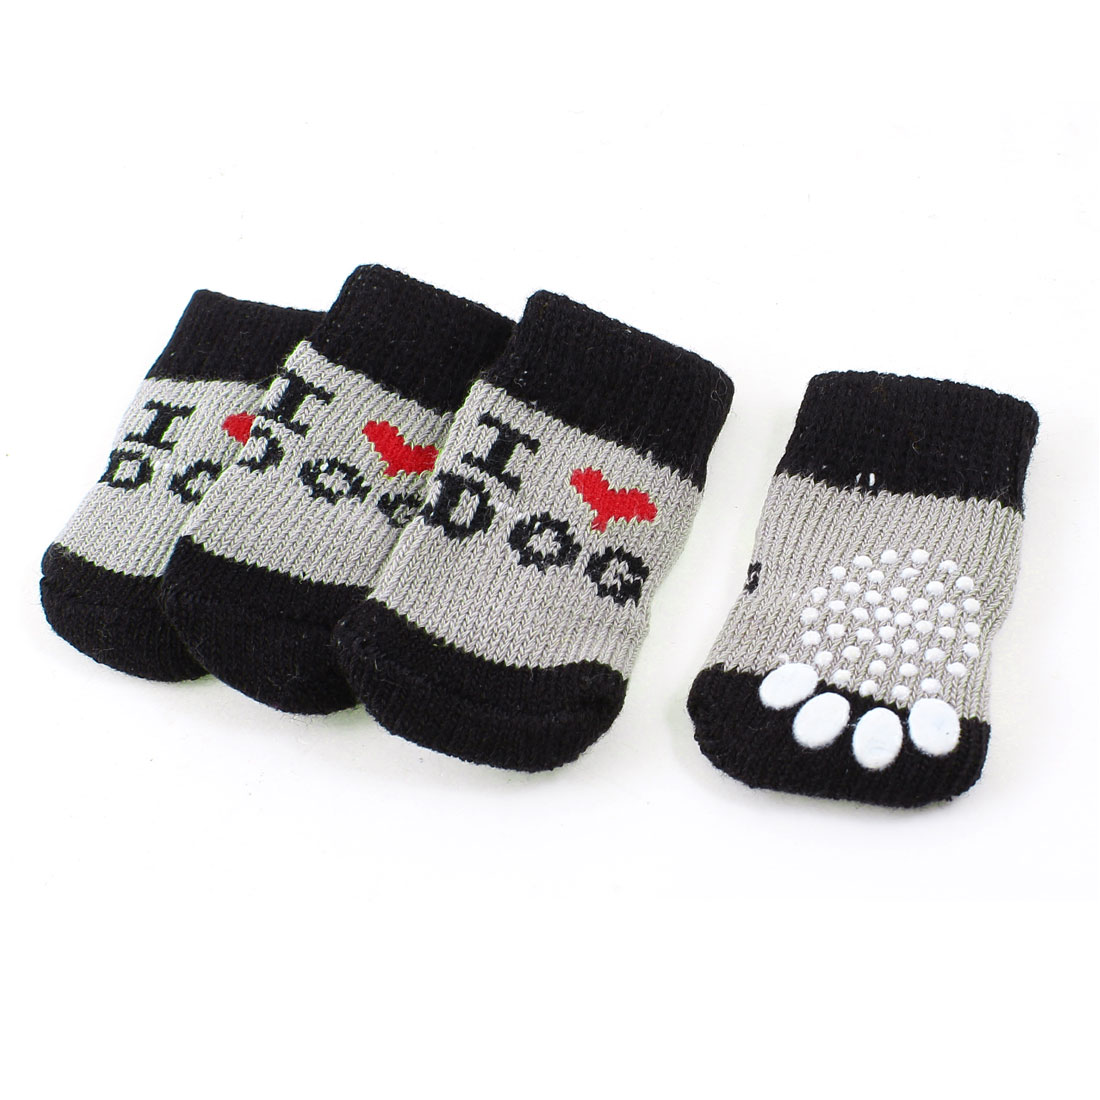 2 Pairs Gray Black Nonslip Paw Printed Acrylic Doggie Puppy Pet Socks Size S